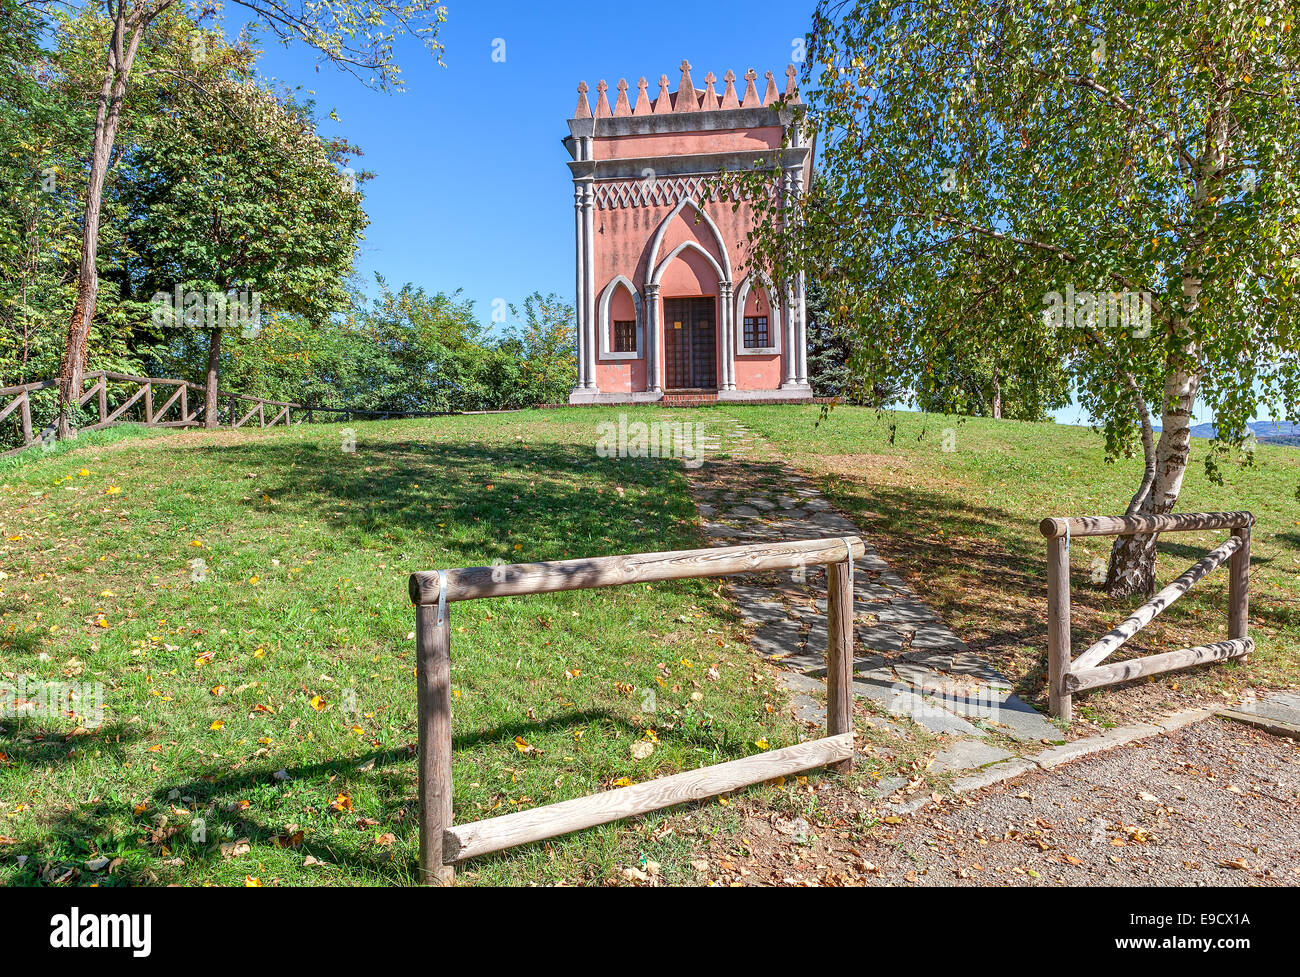 Rural chapel of San Pietro on green lawn near town of Barolo in Piedmont, Northern Italy. - Stock Image